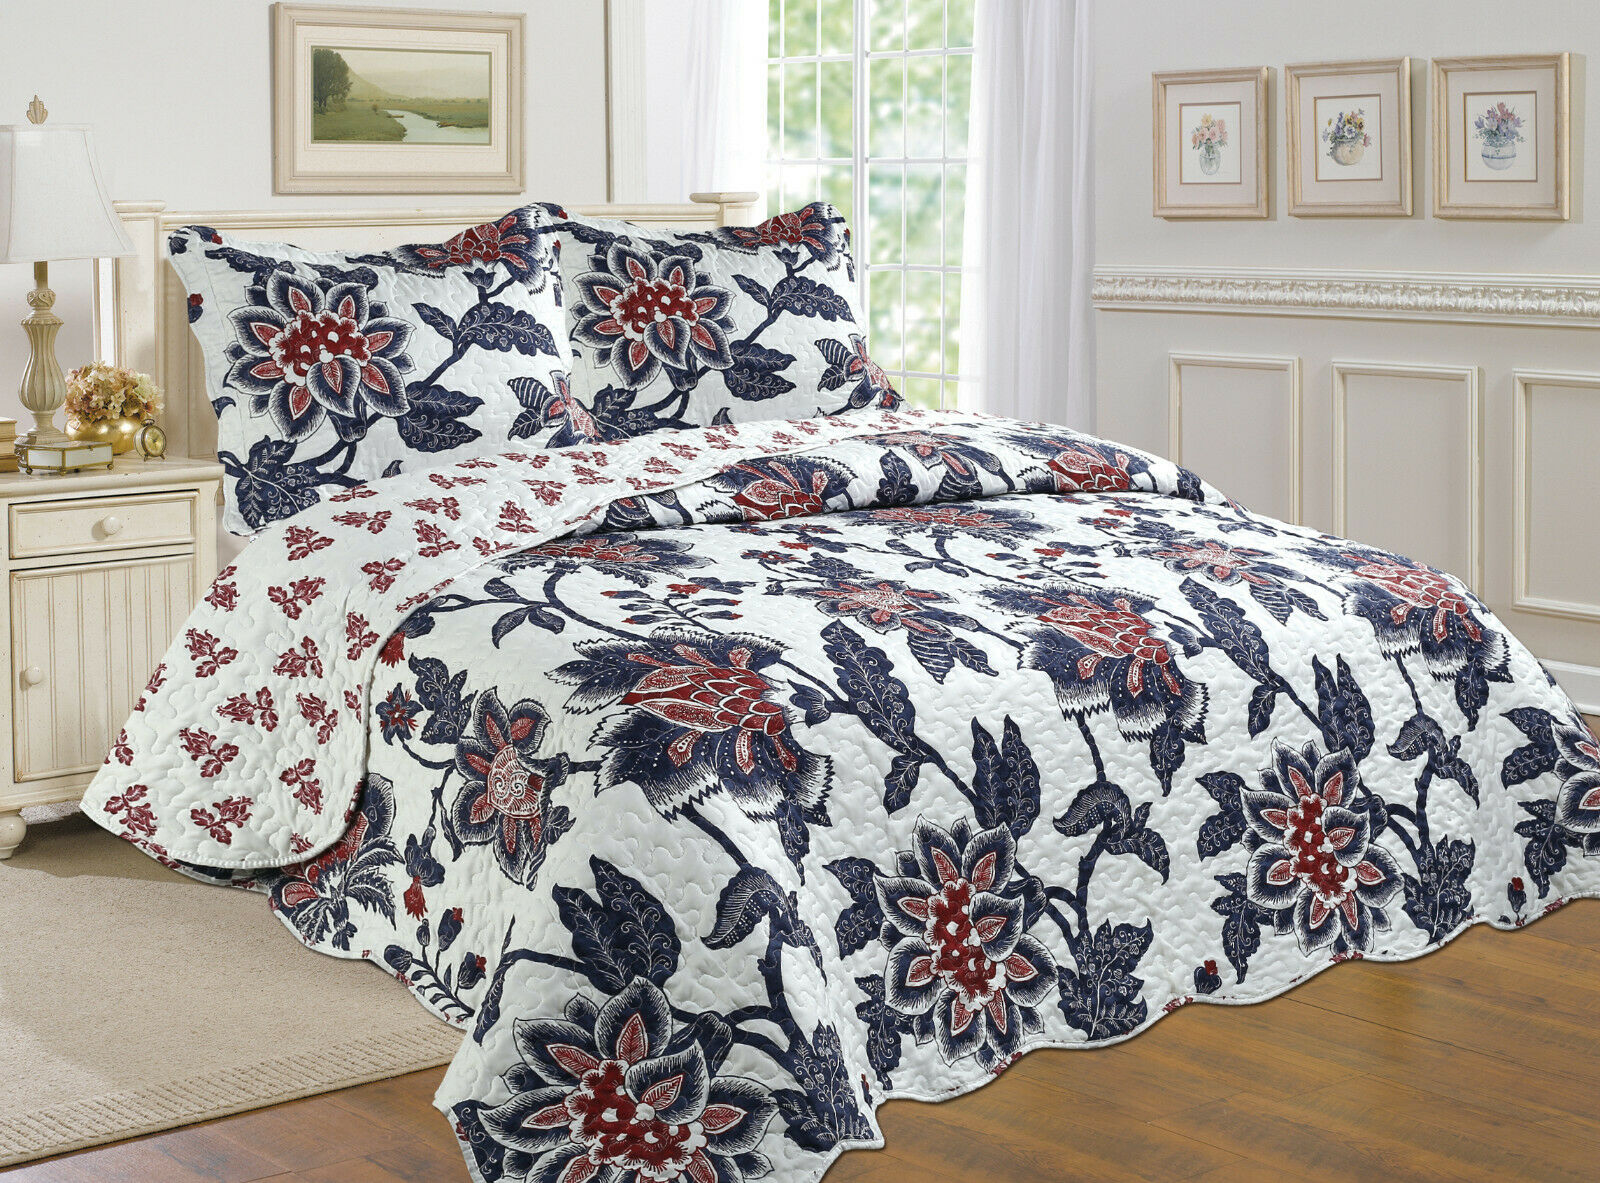 bettspread, Reversible 3pc YOU FOR ALL abdeckunglet,Quilt ...